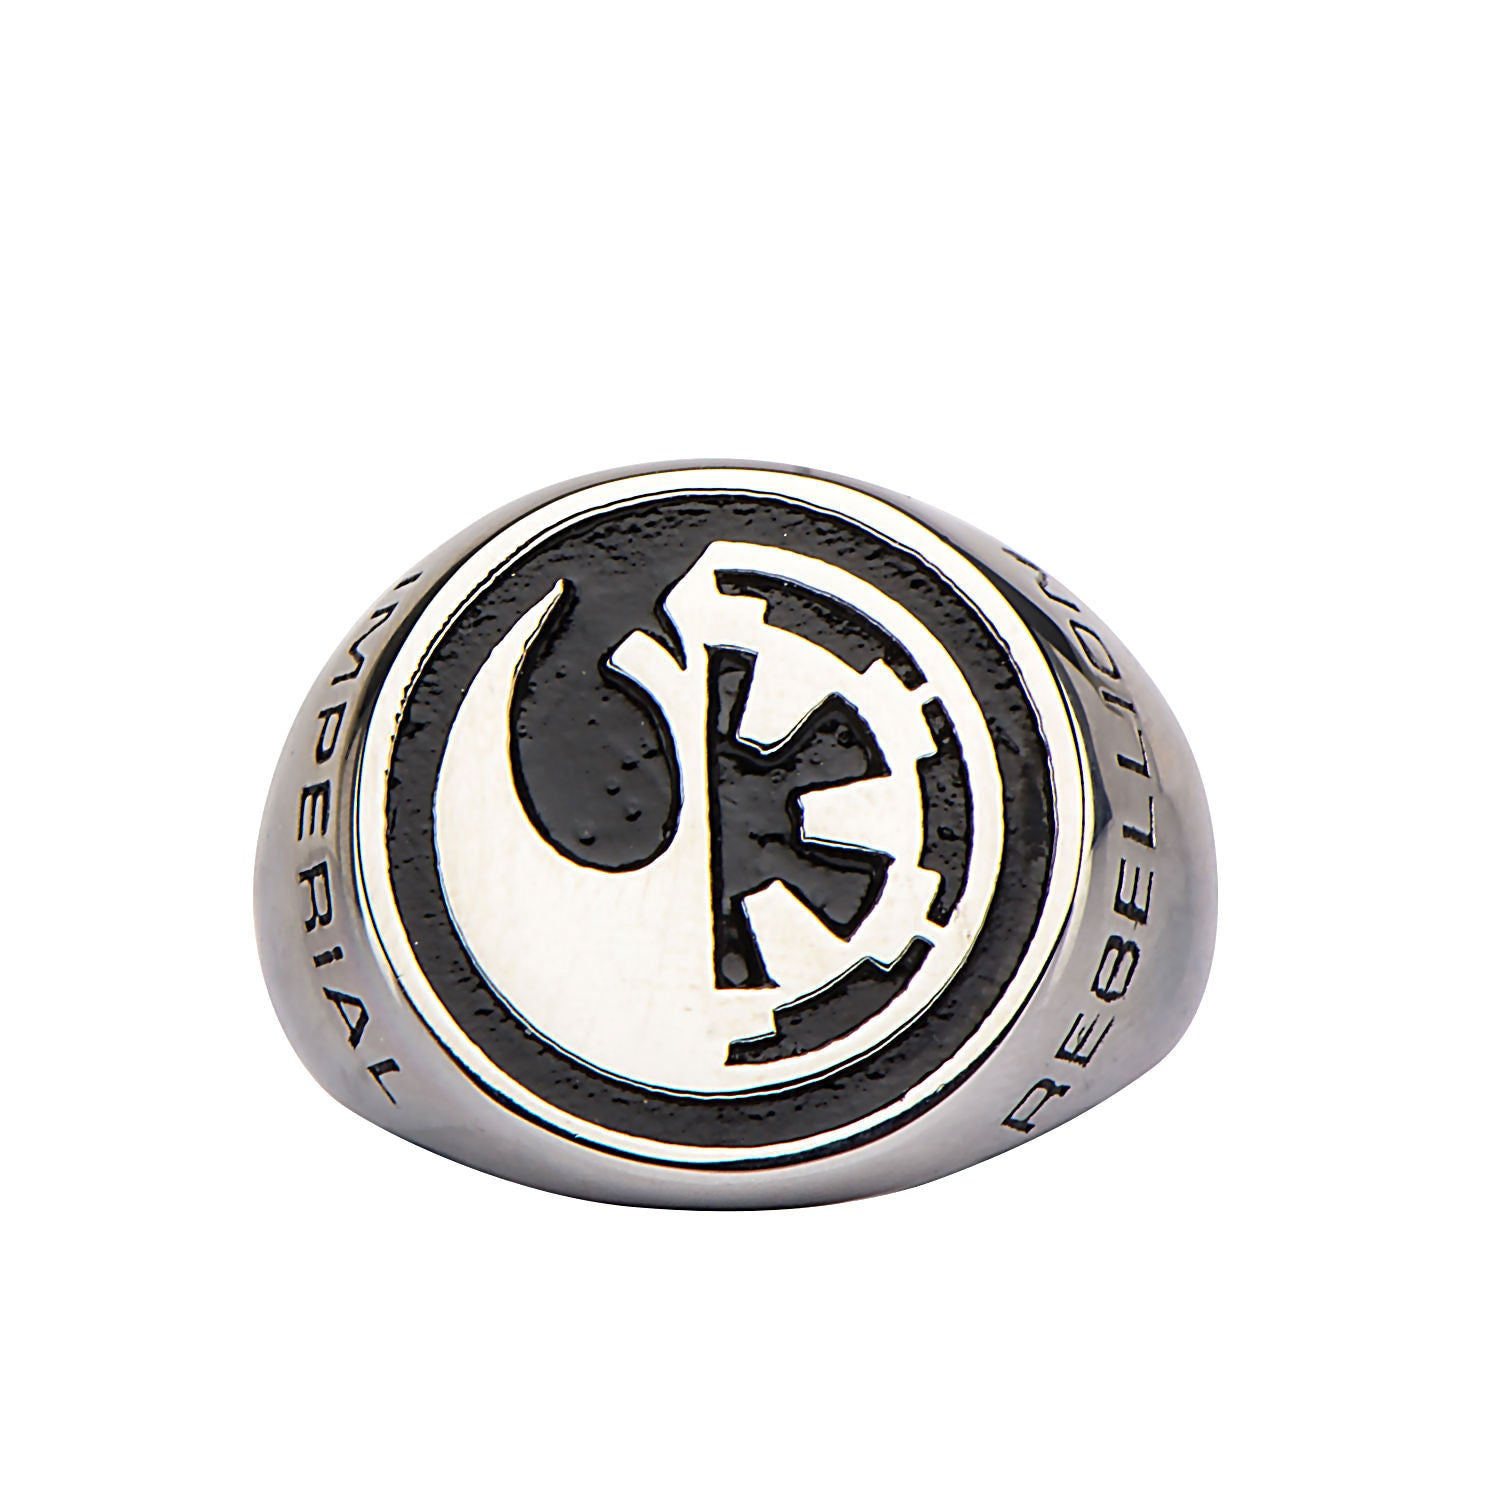 Star wars rogue one rebel alliancegalactic empire symbol ring star wars rogue one rebel alliancegalactic empire symbol ring stainless steel trustmark biocorpaavc Images